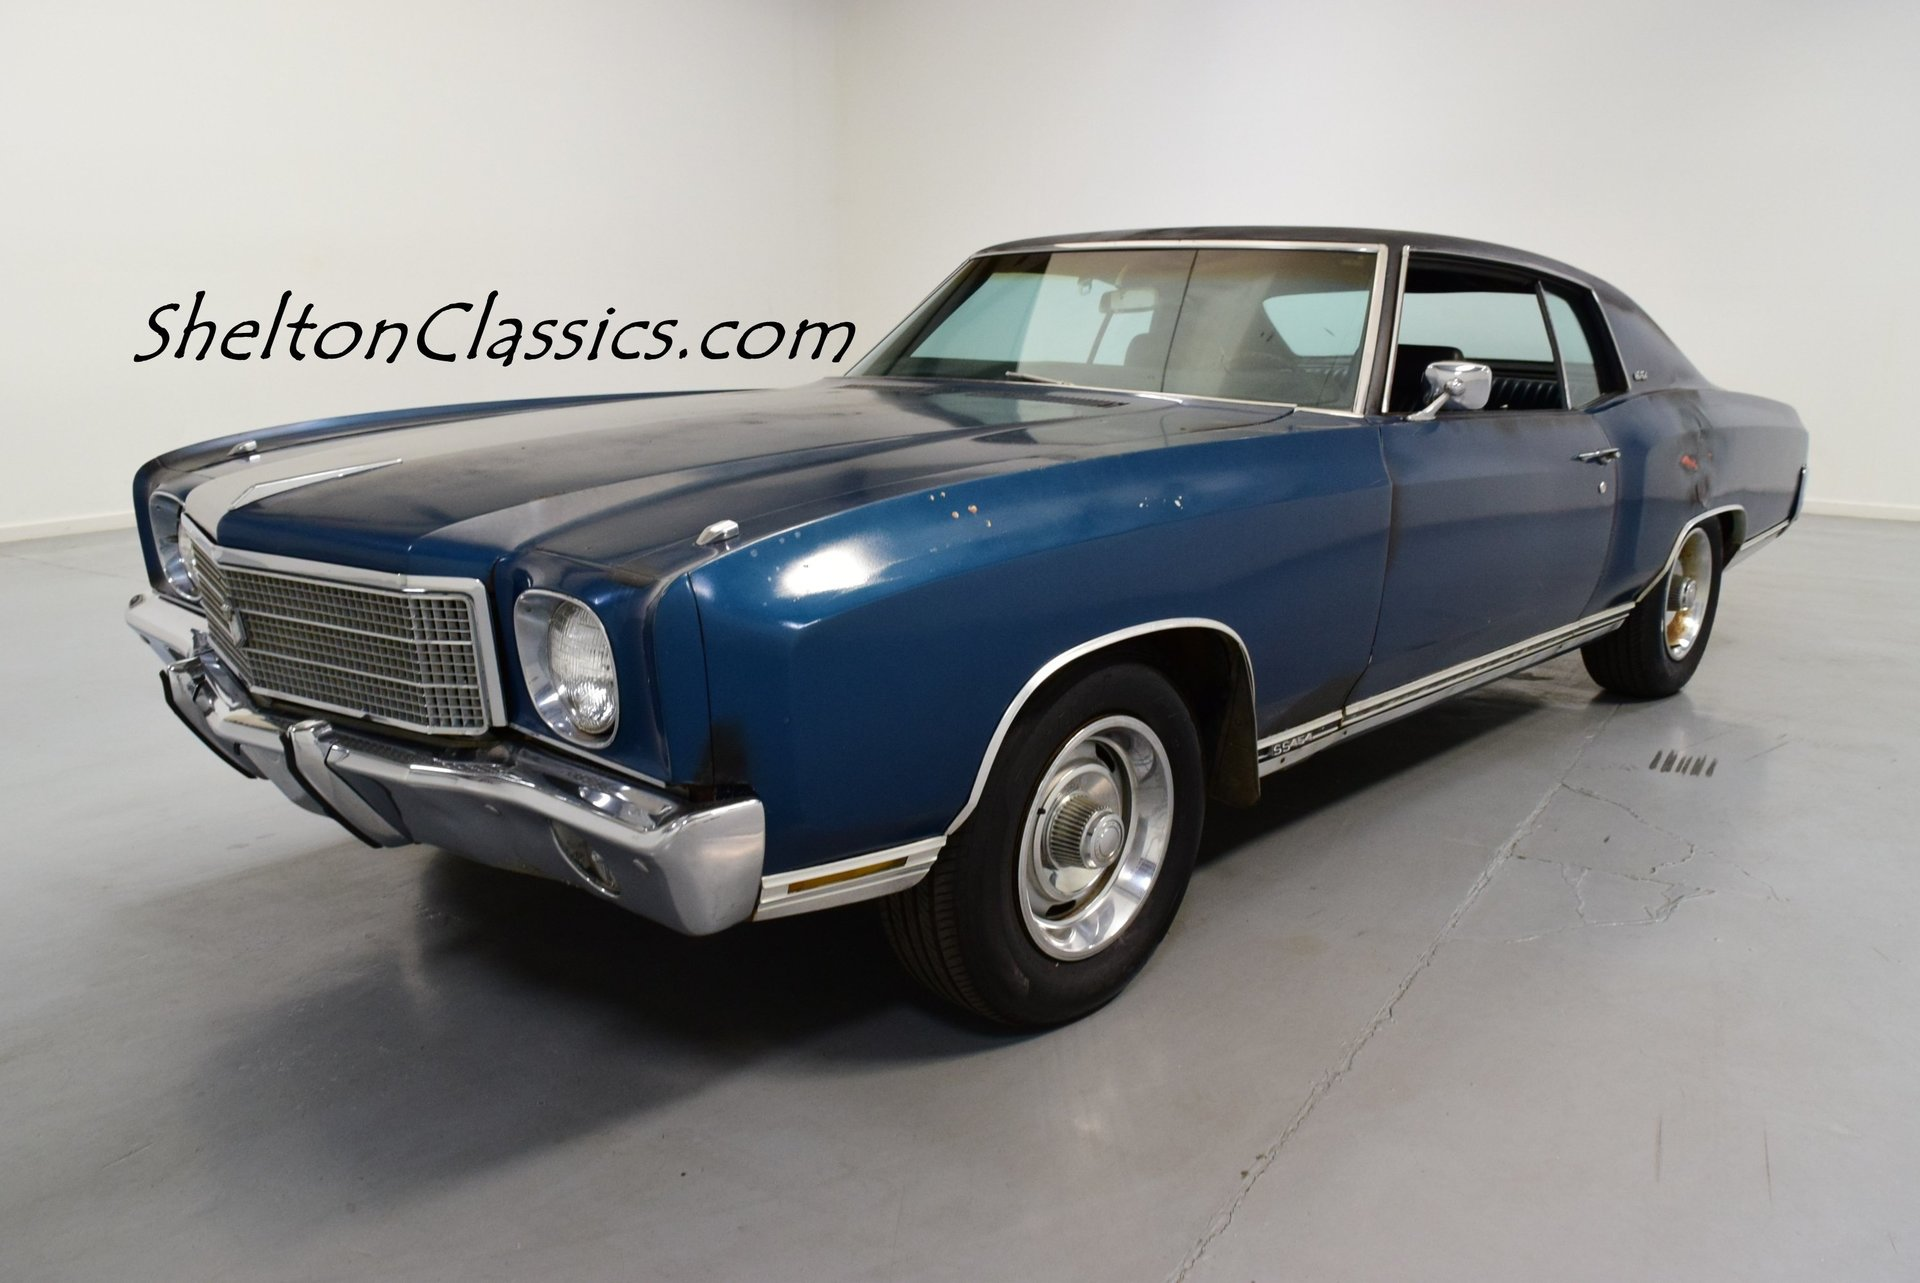 9912594cea05_hd_1970-chevrolet-monte-carlo Take A Look About 1980 Monte Carlo for Sale with Mesmerizing Photos Cars Review